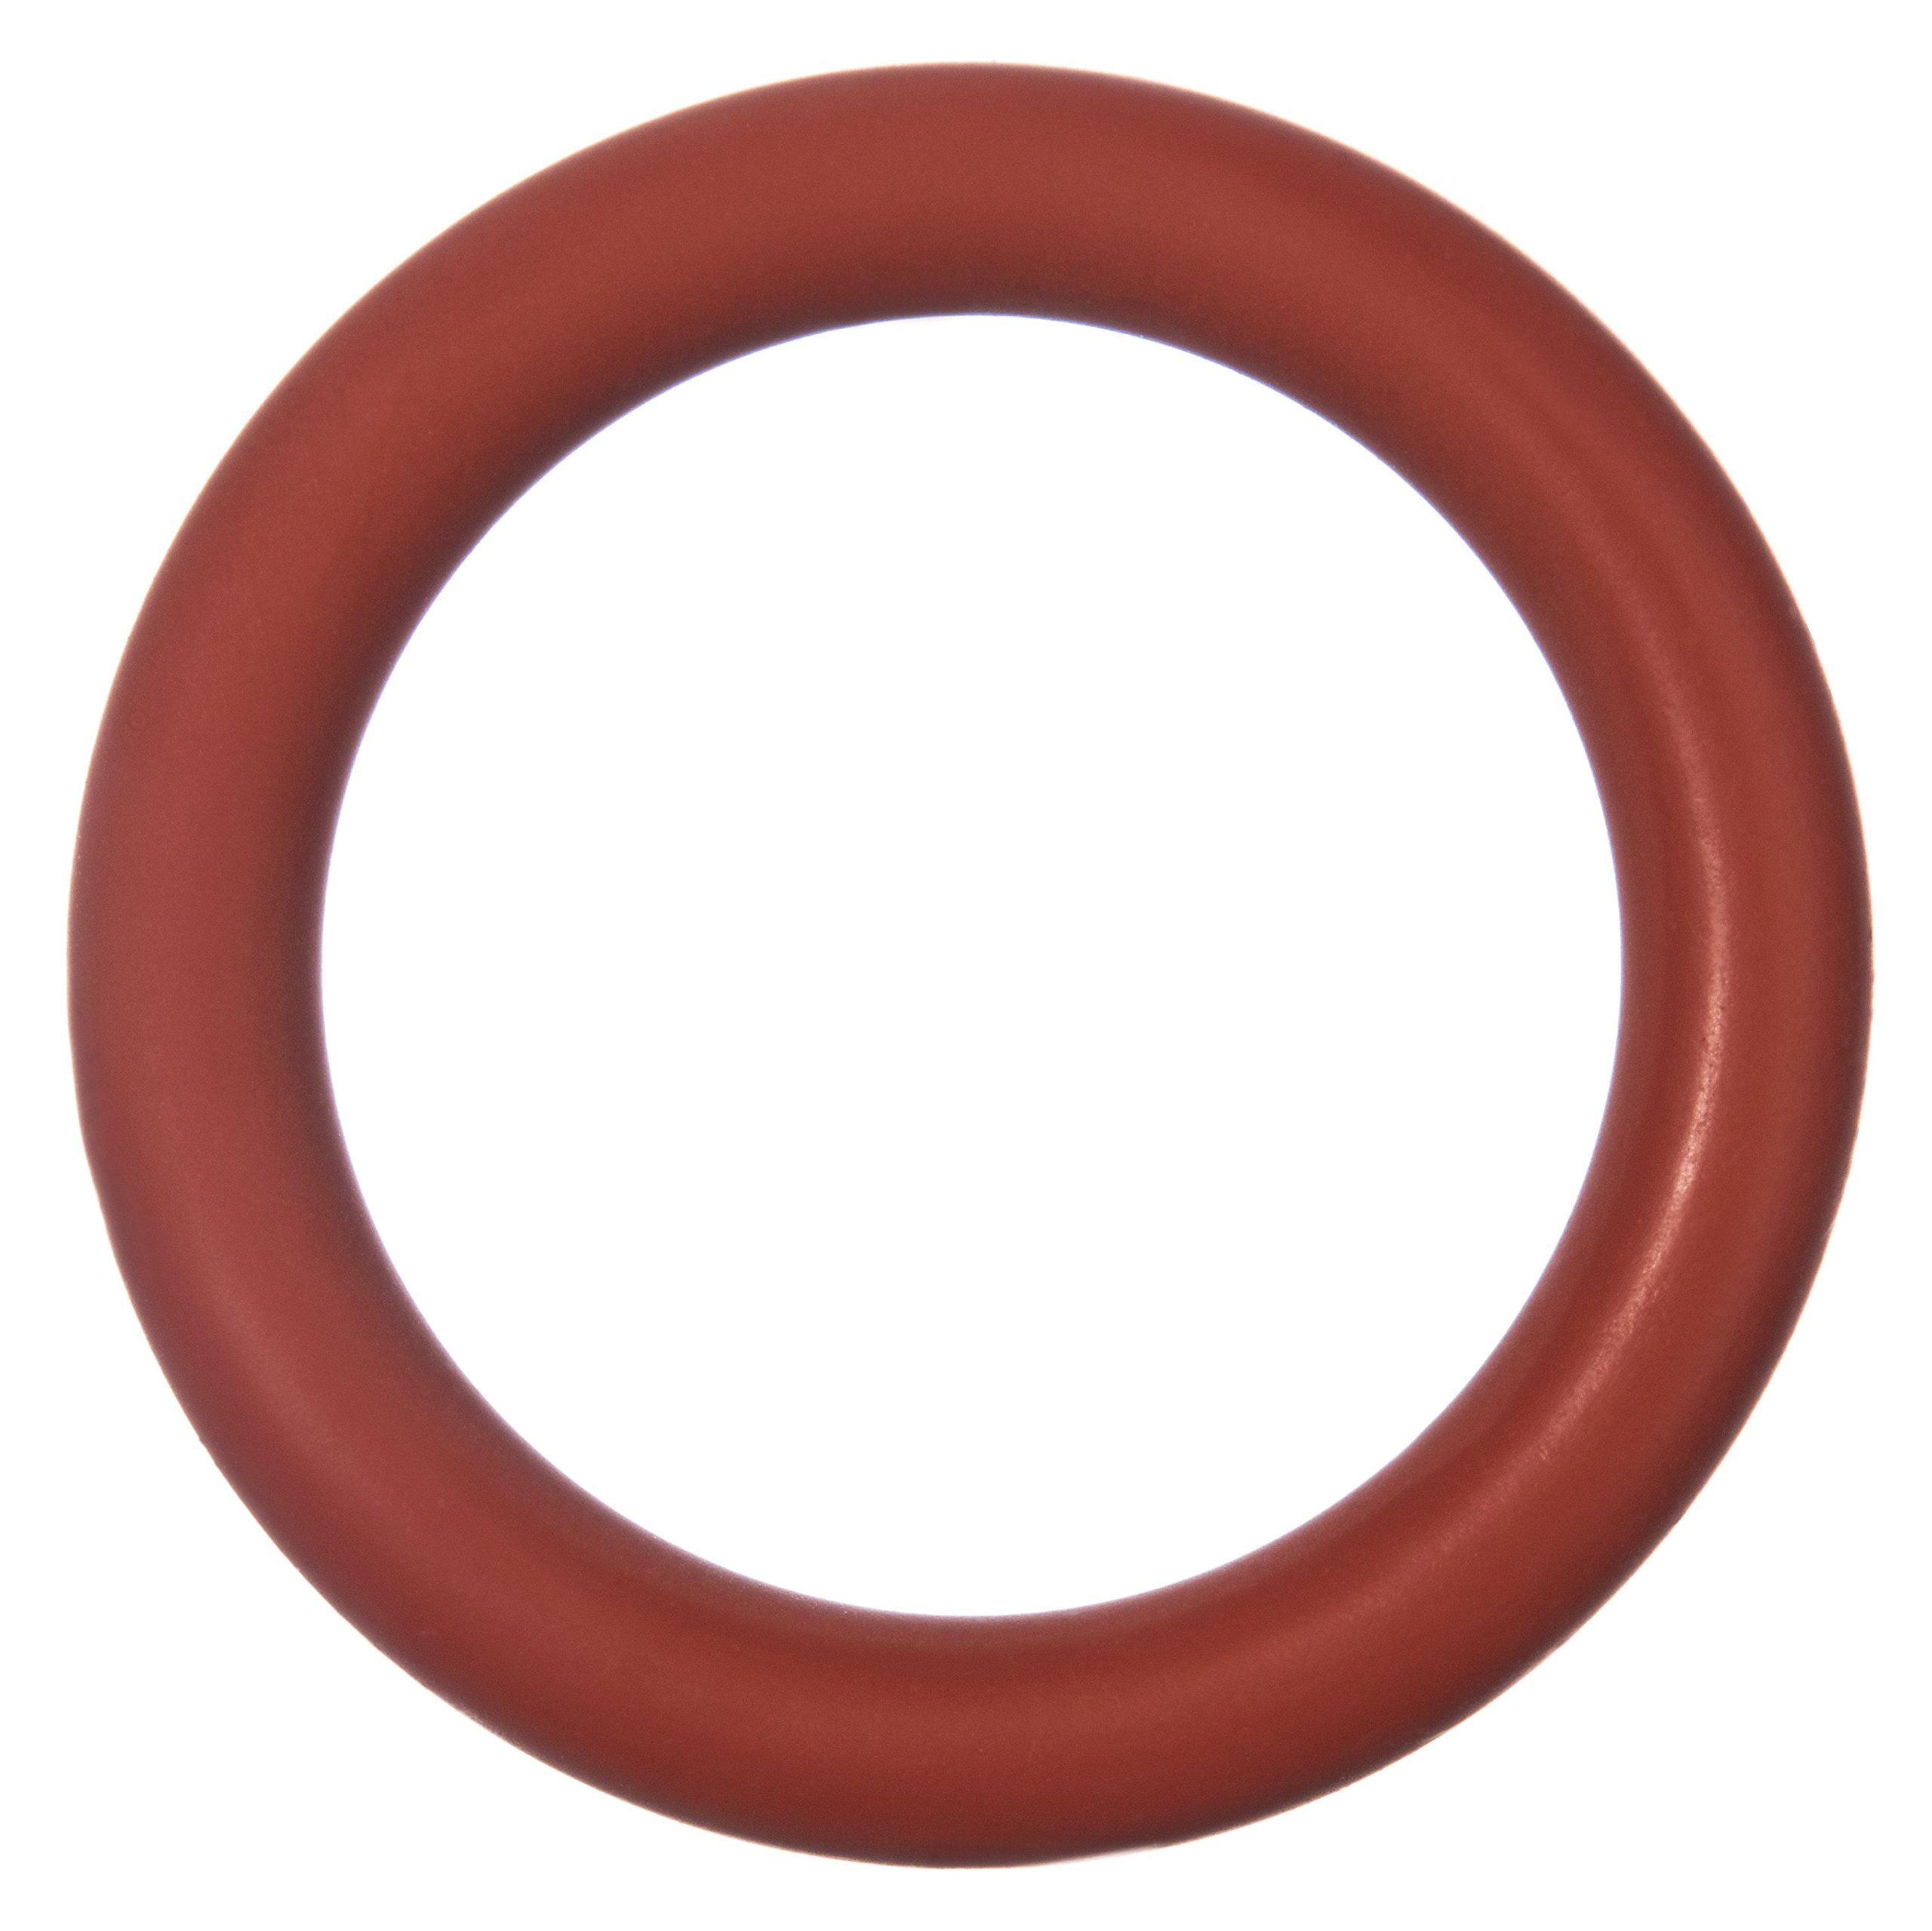 USA Sealing Inc-Soft Silicone O-Ring-Dash 210-Pack of 25